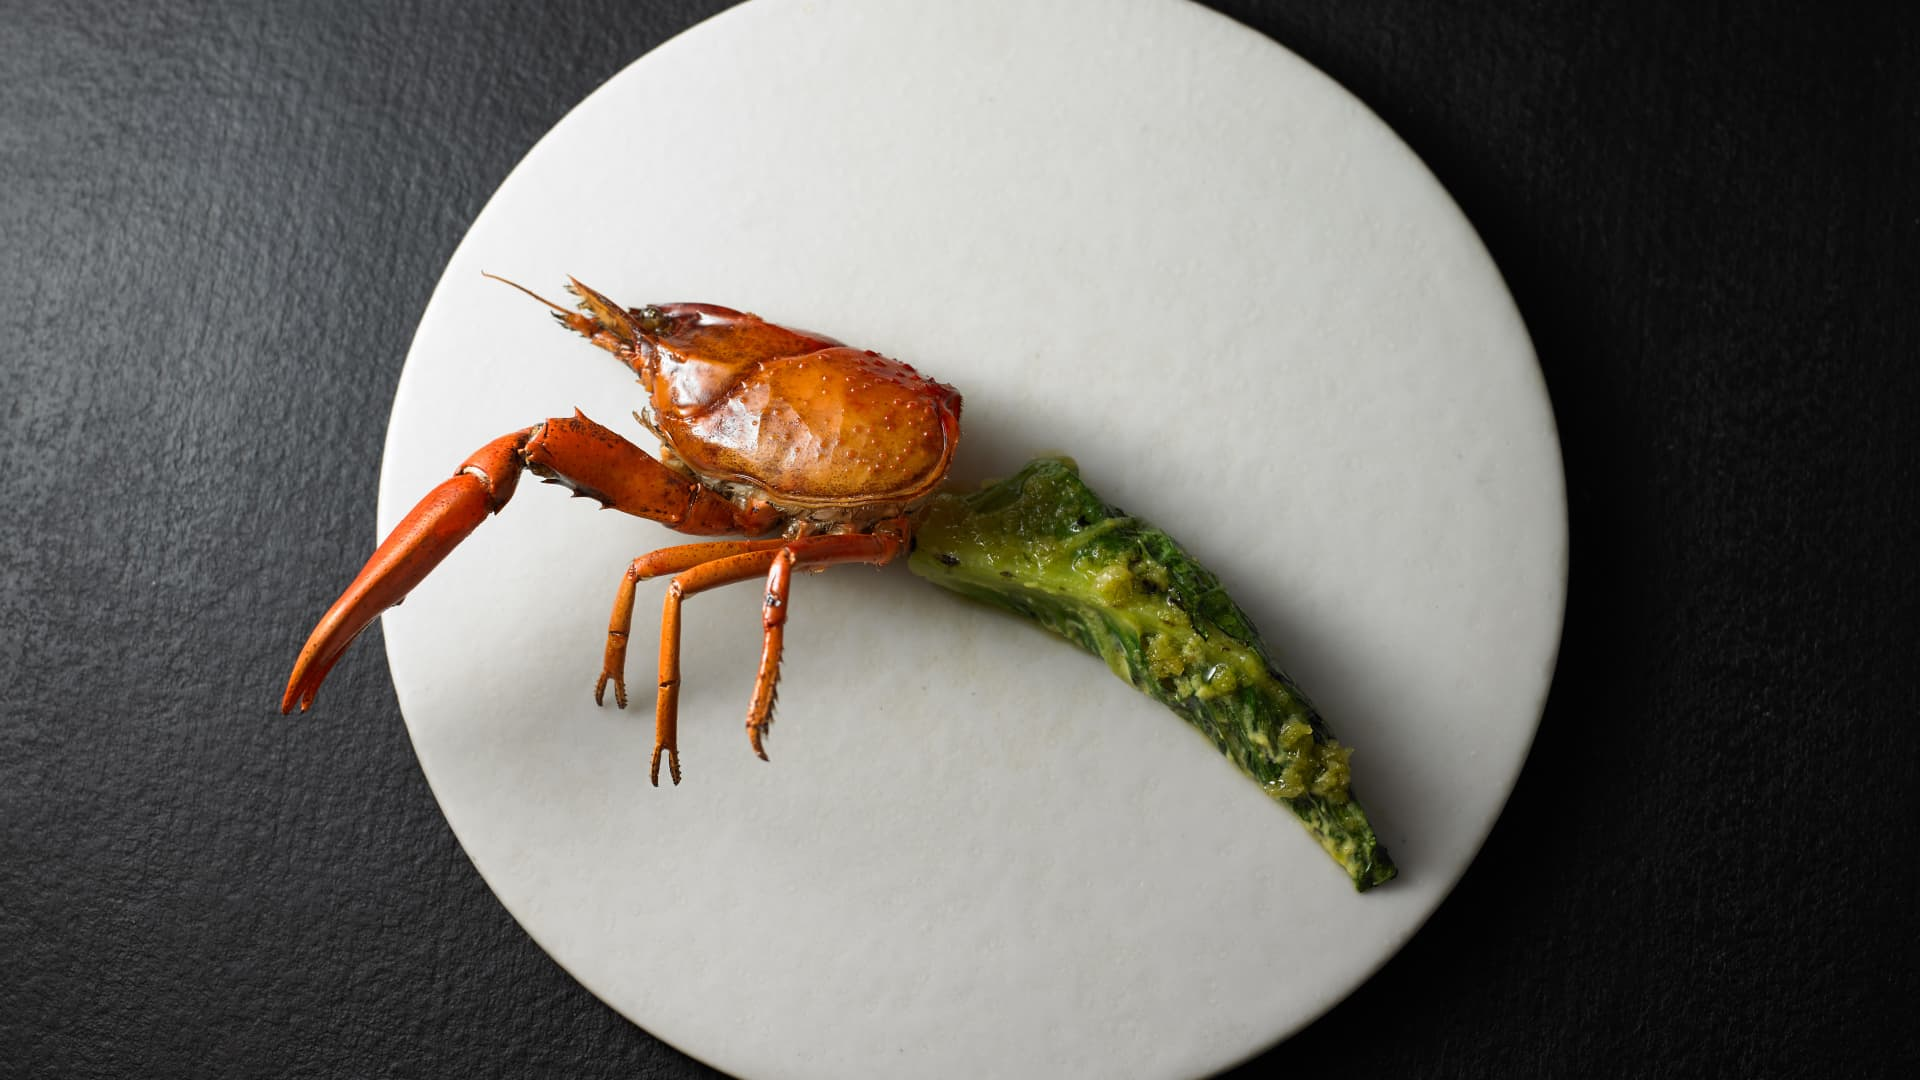 Attica's grilled marron, a crayfish found in Western Australia, with desert lime.